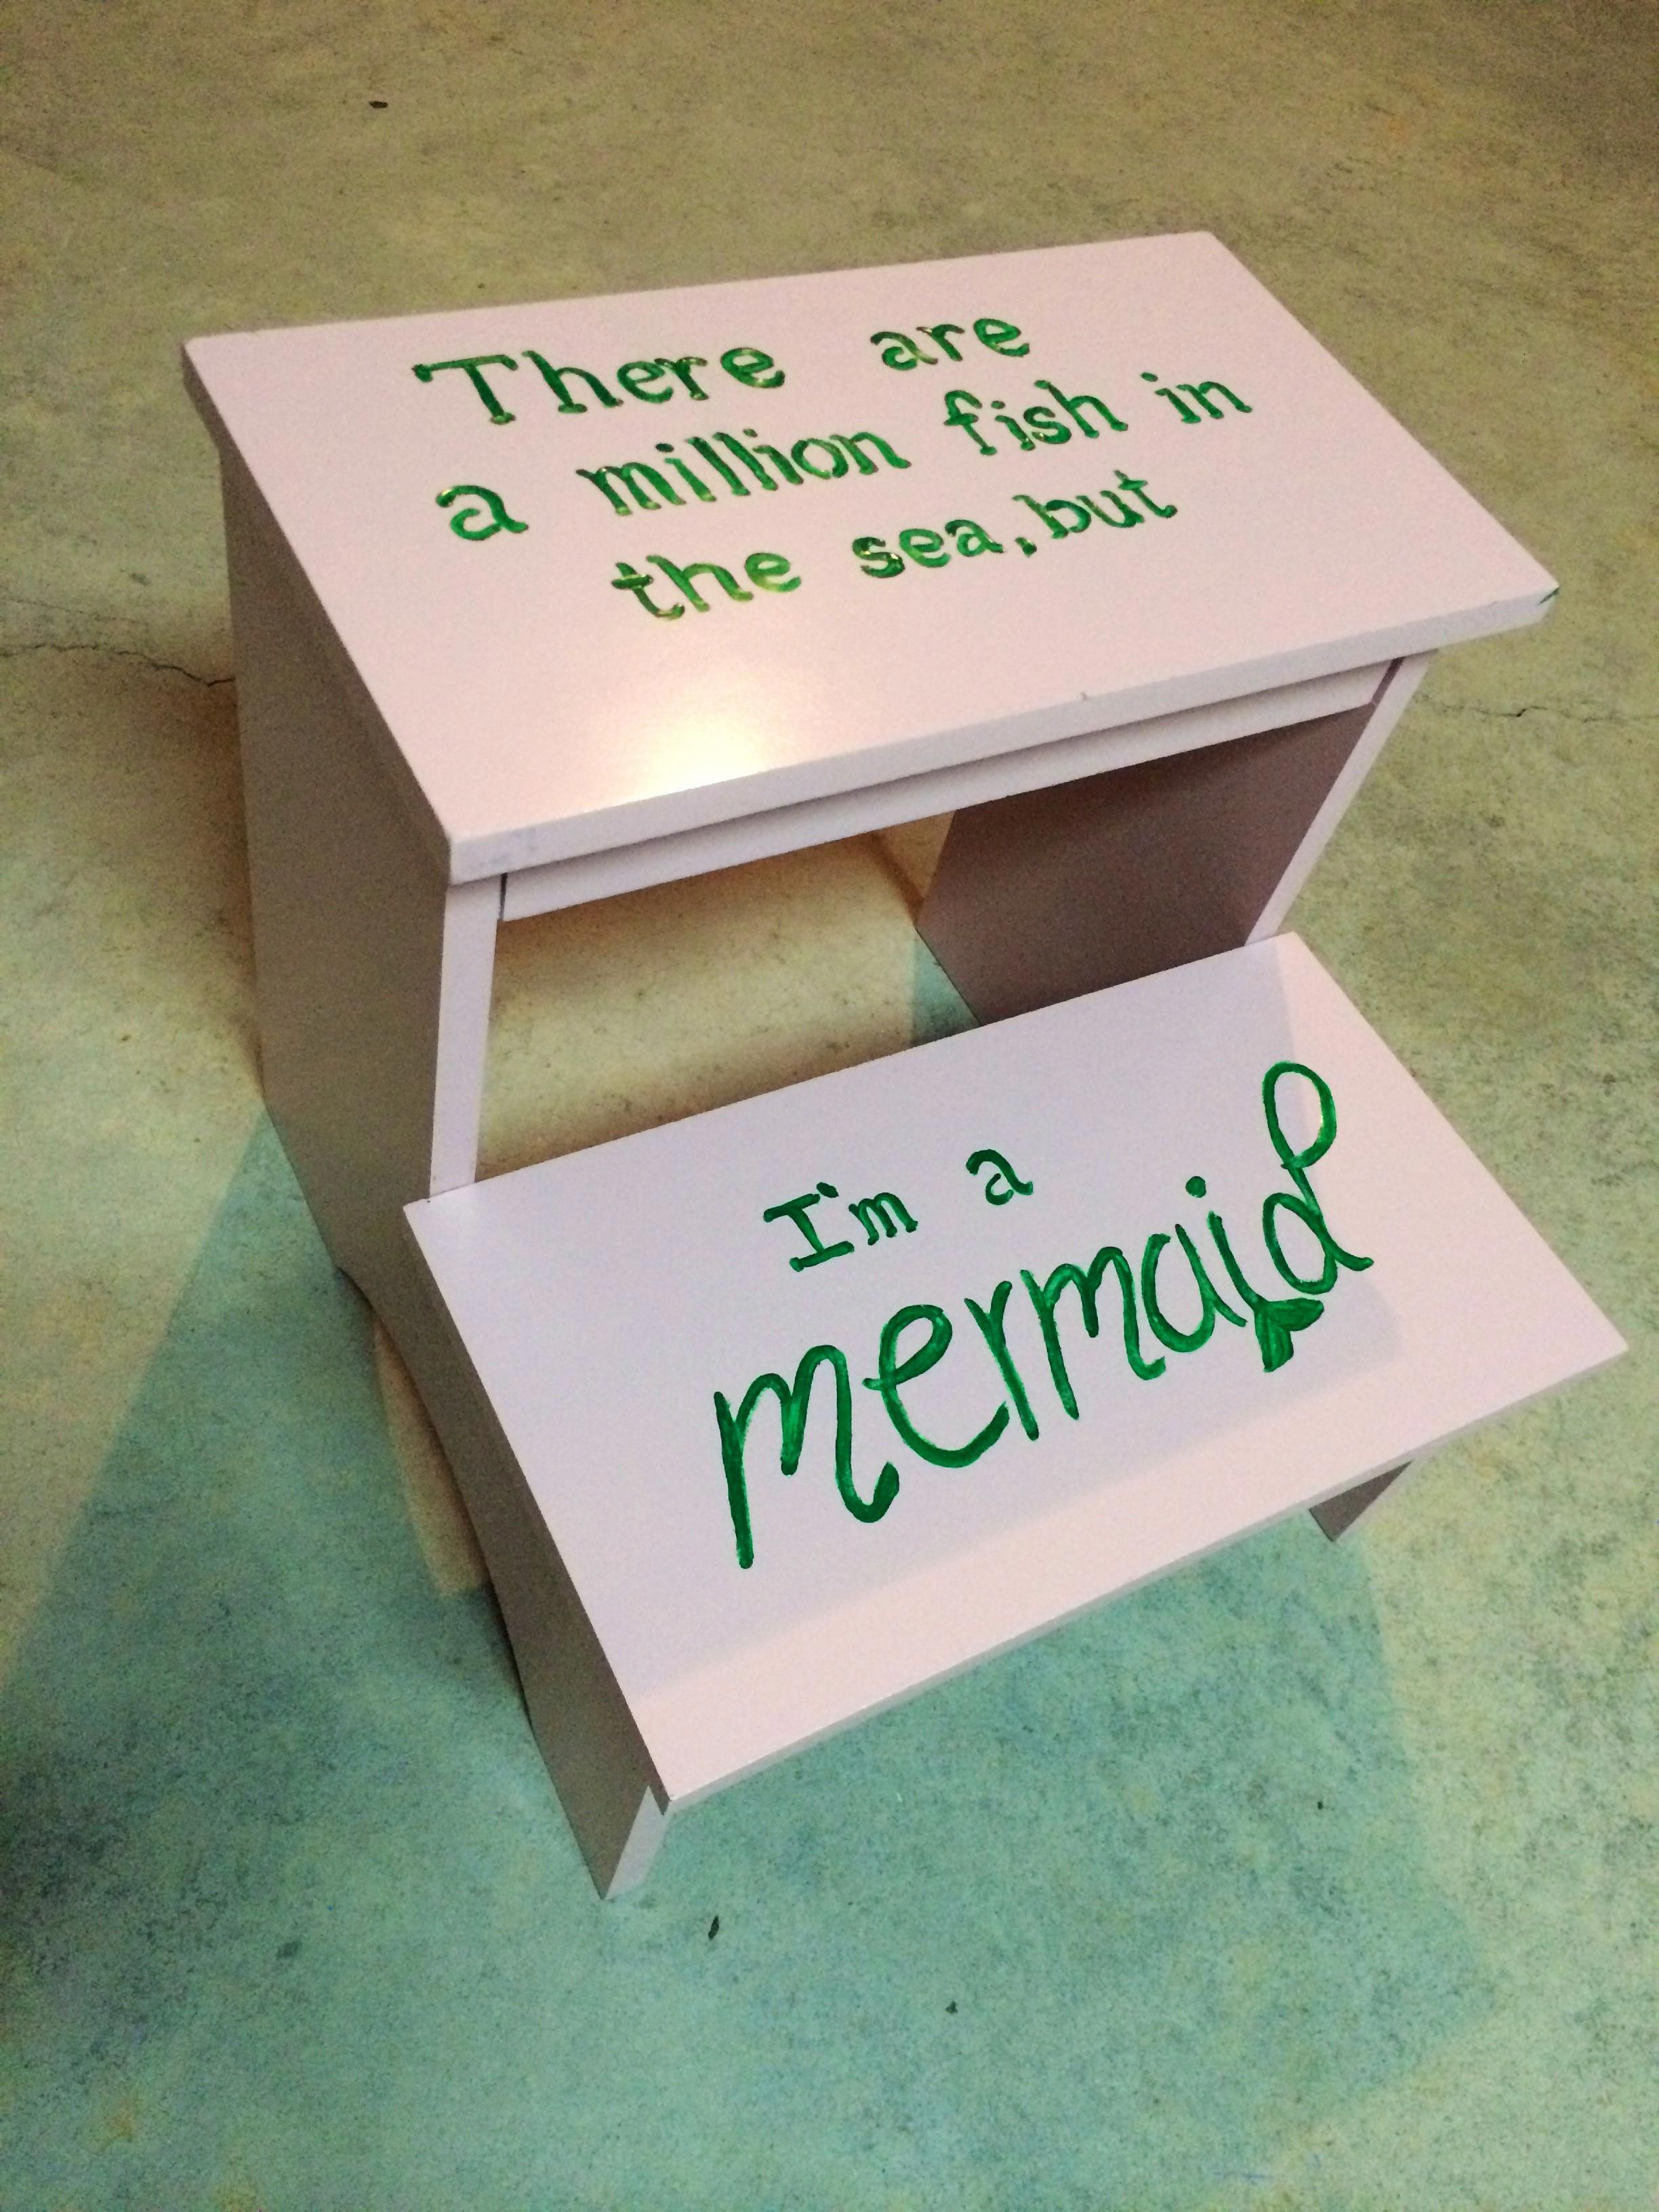 Baby girl bathroom mermaid theme continues #girlsbathroom #mermaidbathroomdecor